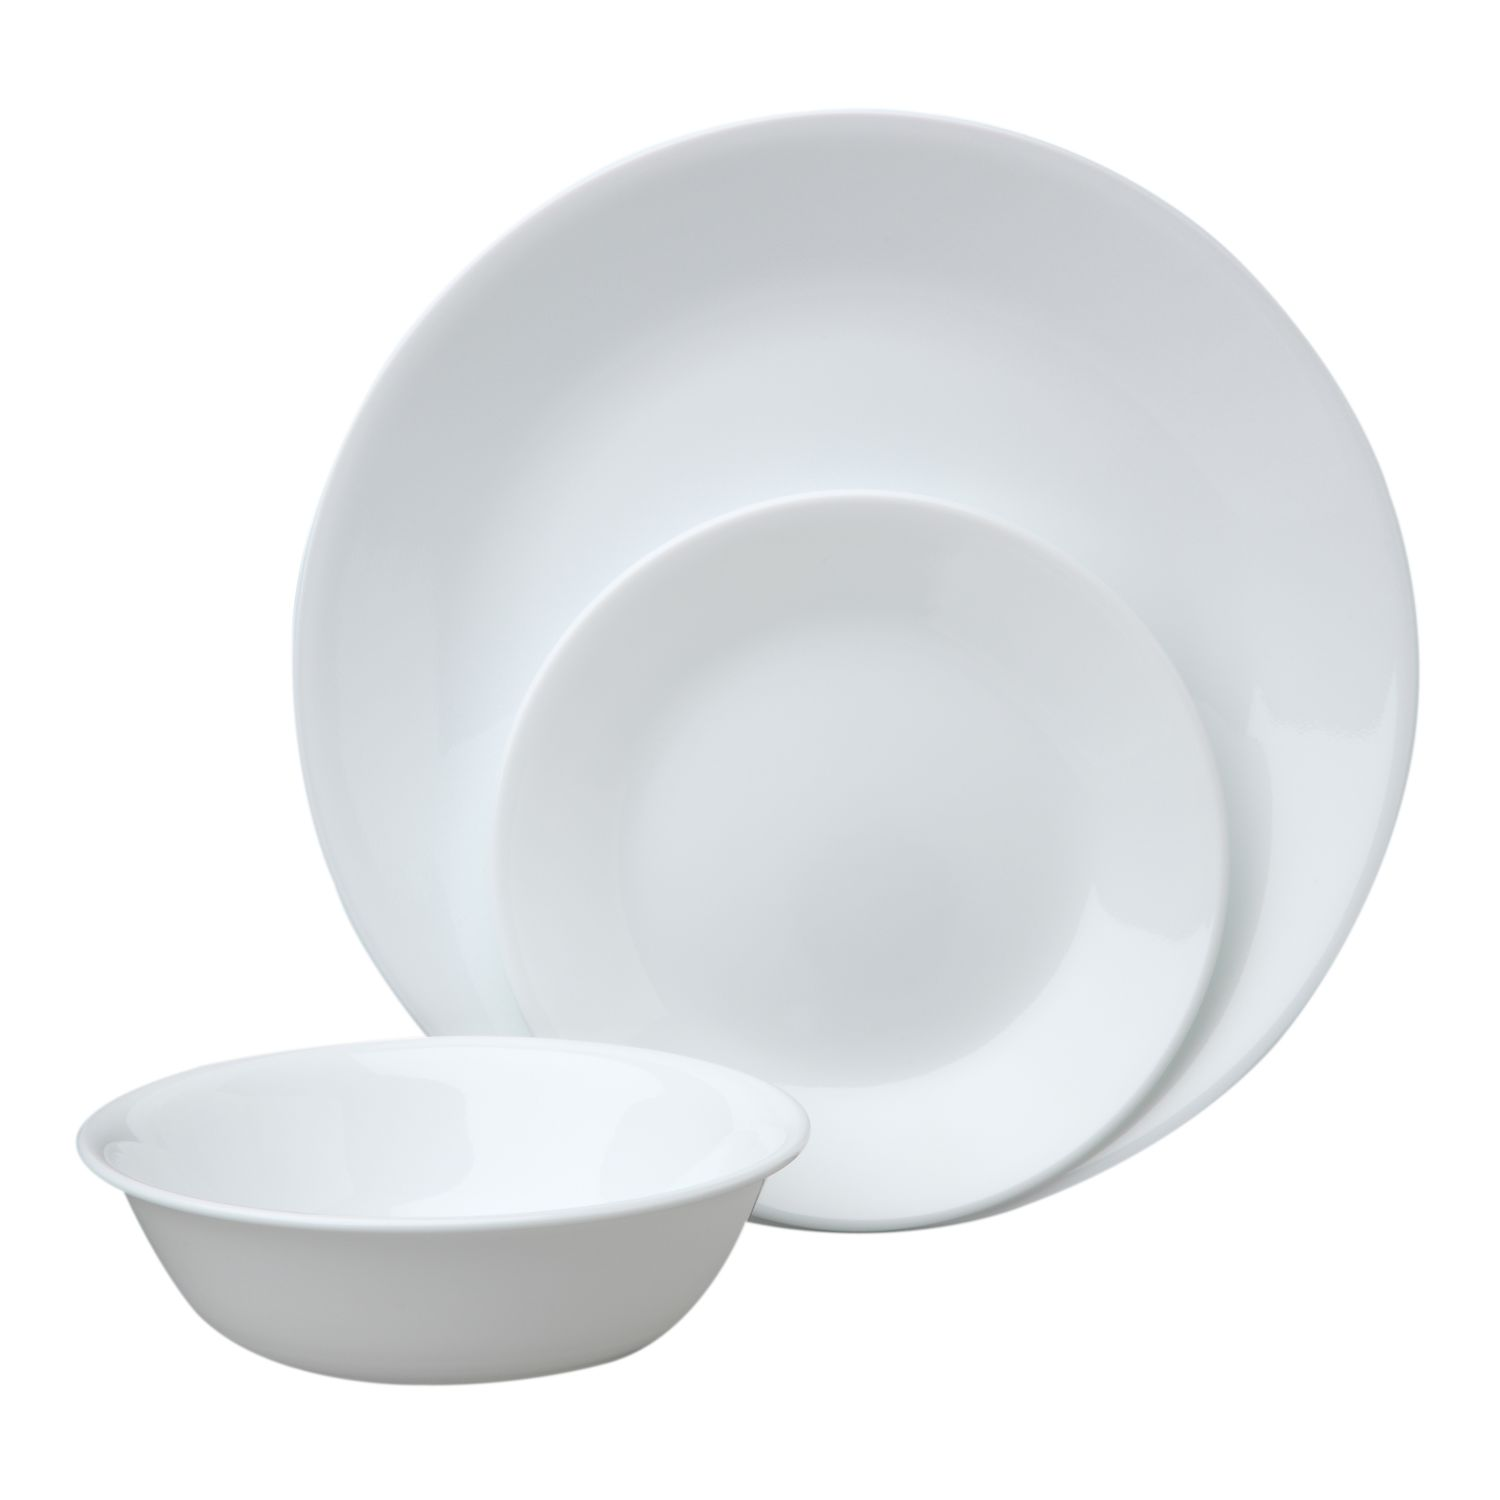 Corelle Soup/Cereal Bowl - Winter Frost White